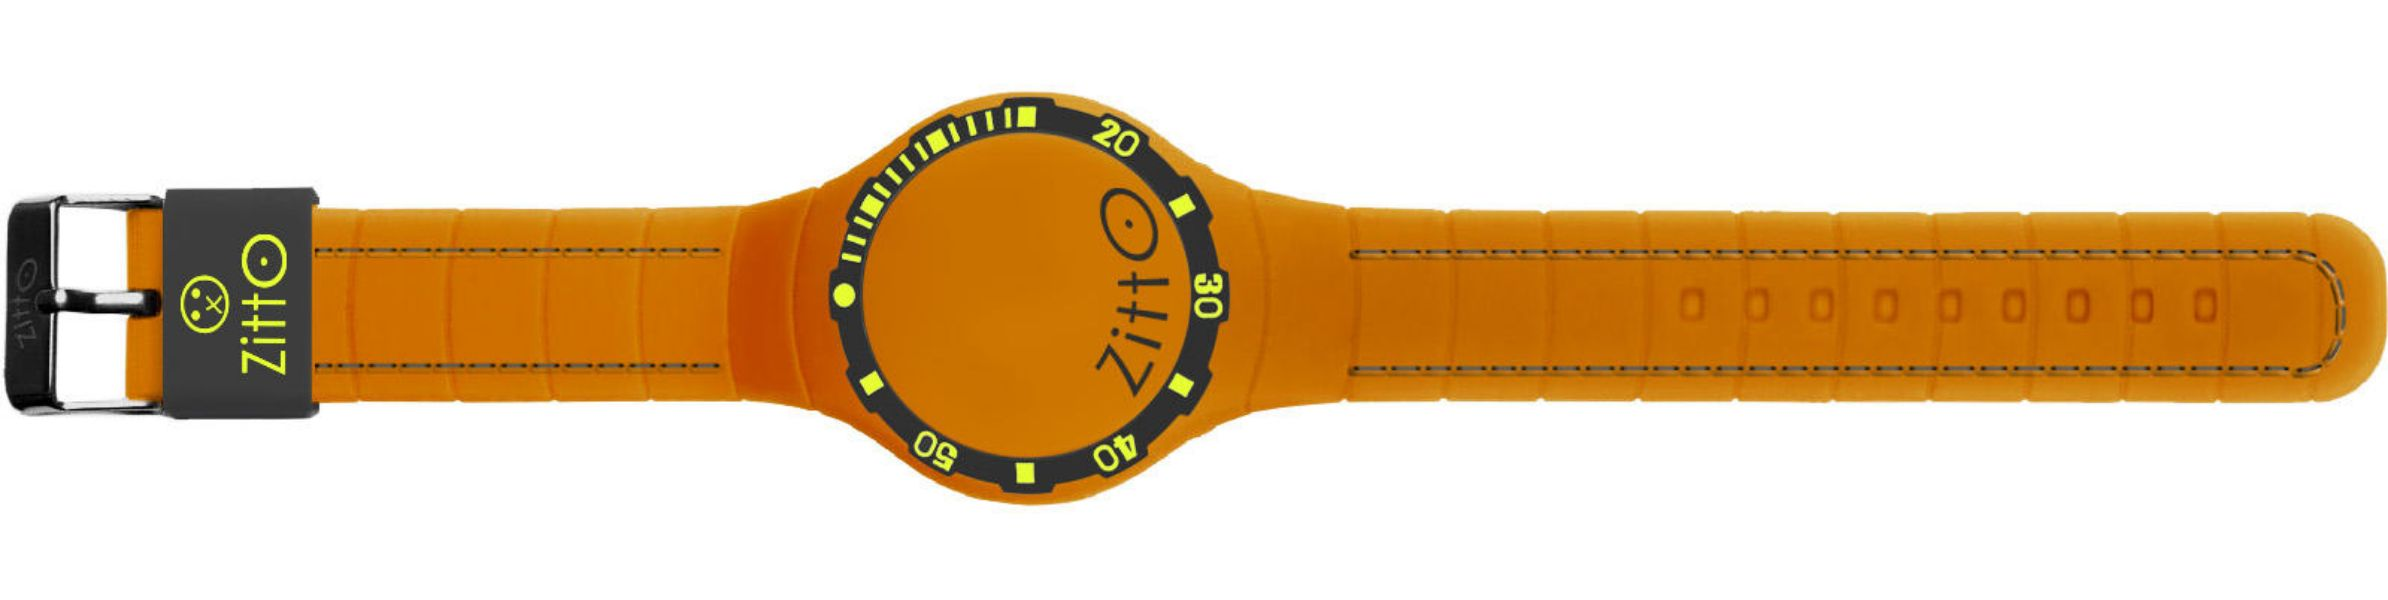 OROLOGIO-36MM-MINI-ARANCIO-SOFT-TOUCH-ZITTO